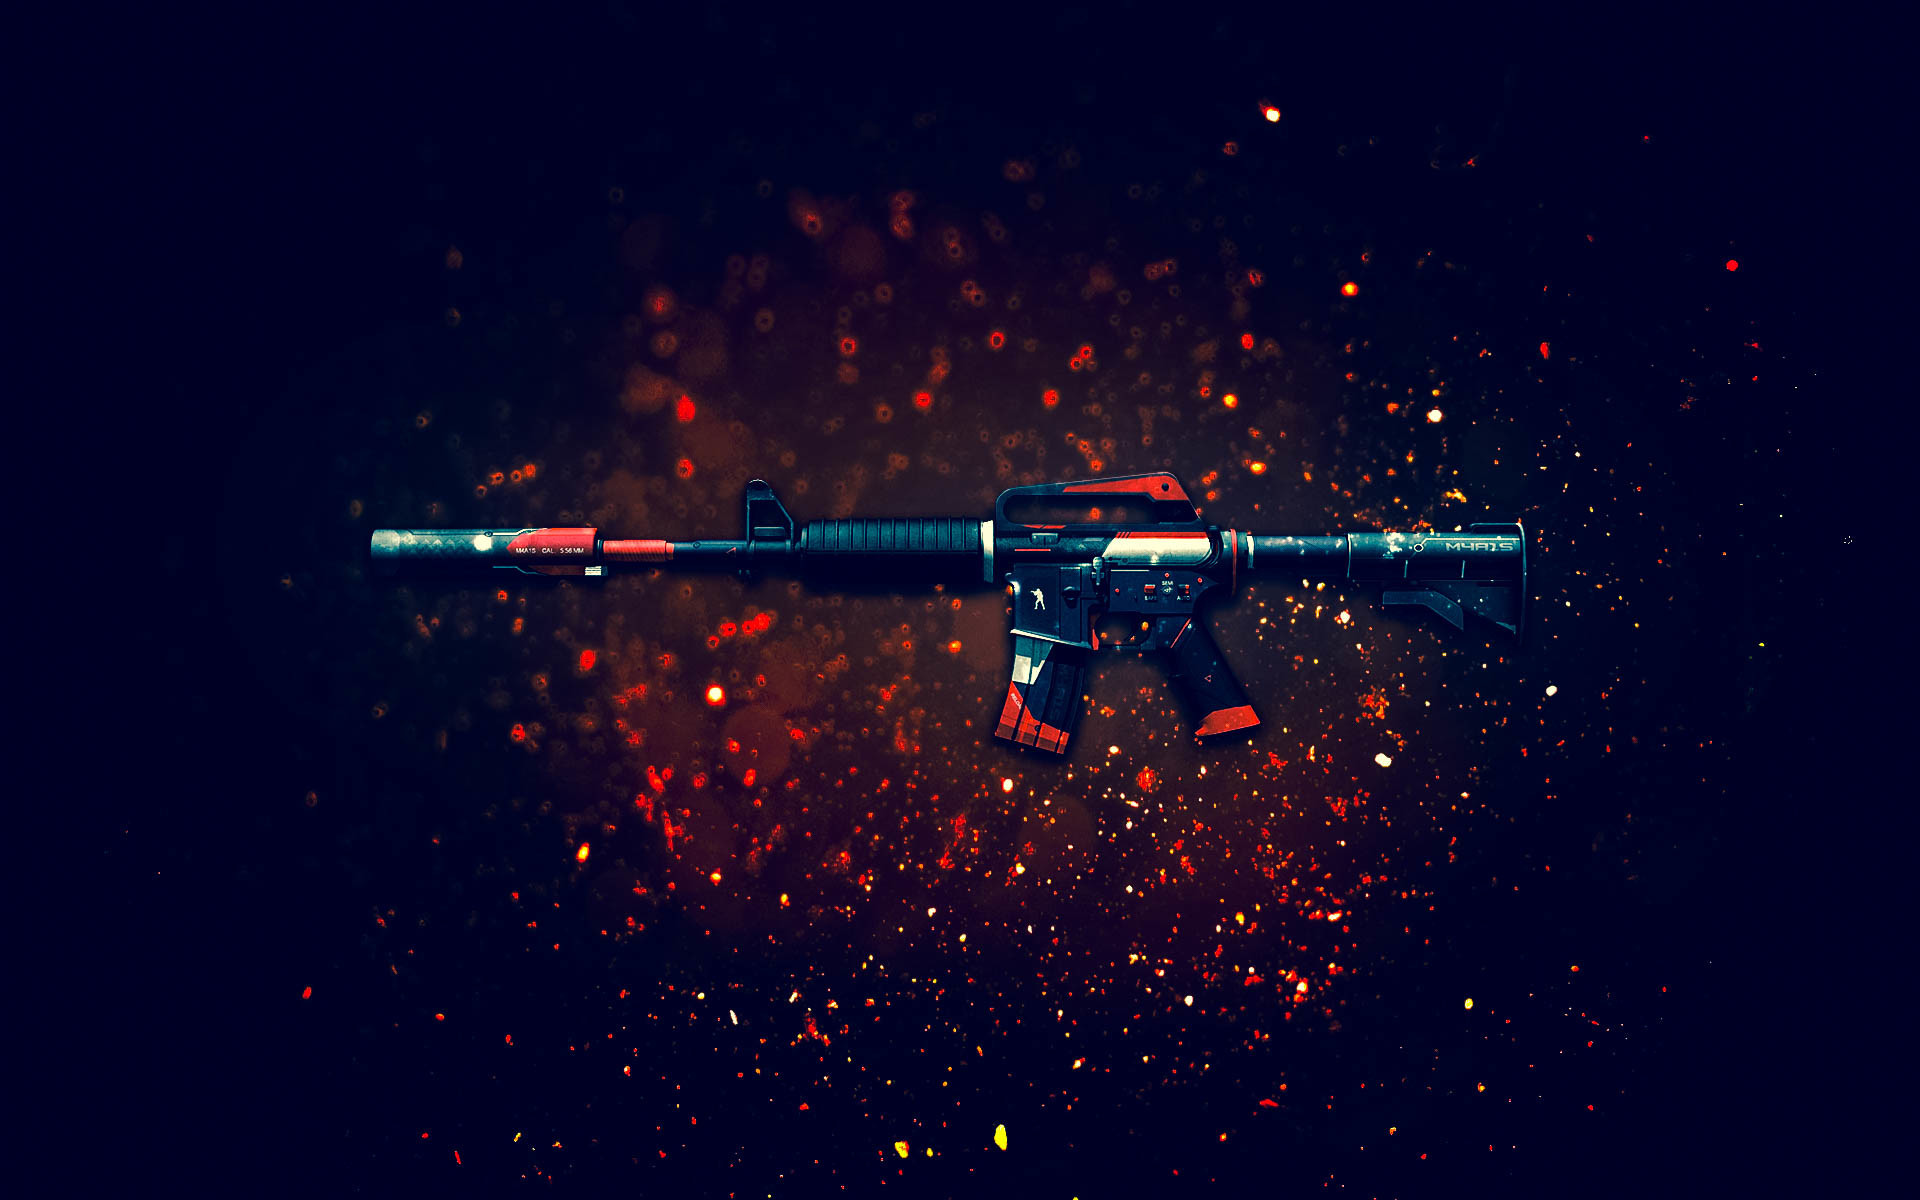 1920x1200 CS:GO Weapon Skin Wallpapers on Behance | My CSGO collection | Pinterest |  Weapons